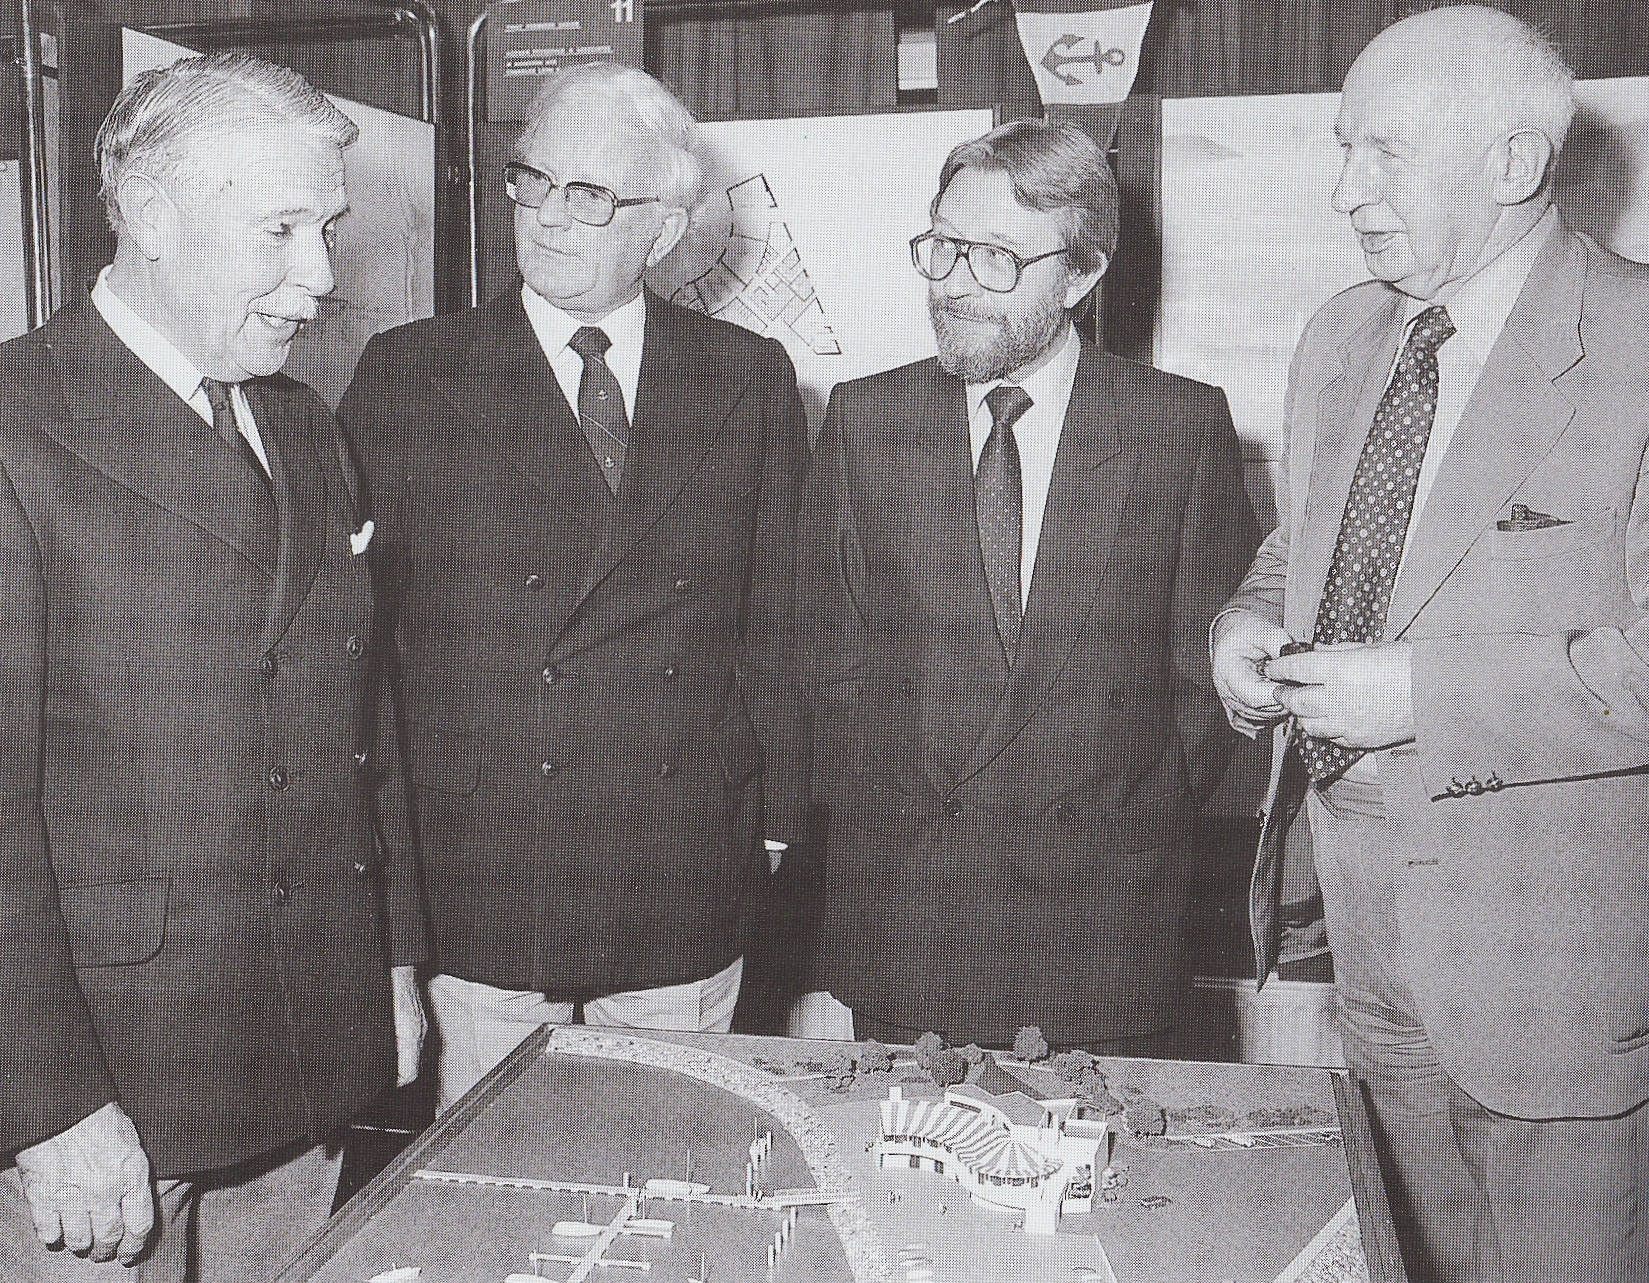 After the competition organised by the Royal Institute of Architects in Ireland for a new clubhouse design attracted 18 entries, the winning project was unveiled in November 1984. With the model of the proposed new building are (left to right) Bill Cuffe-Smith (Commodore Howth YC), architects Vincent Fitzgerald and Reg Chandler, and Martin D Burke, President of the RIAI.